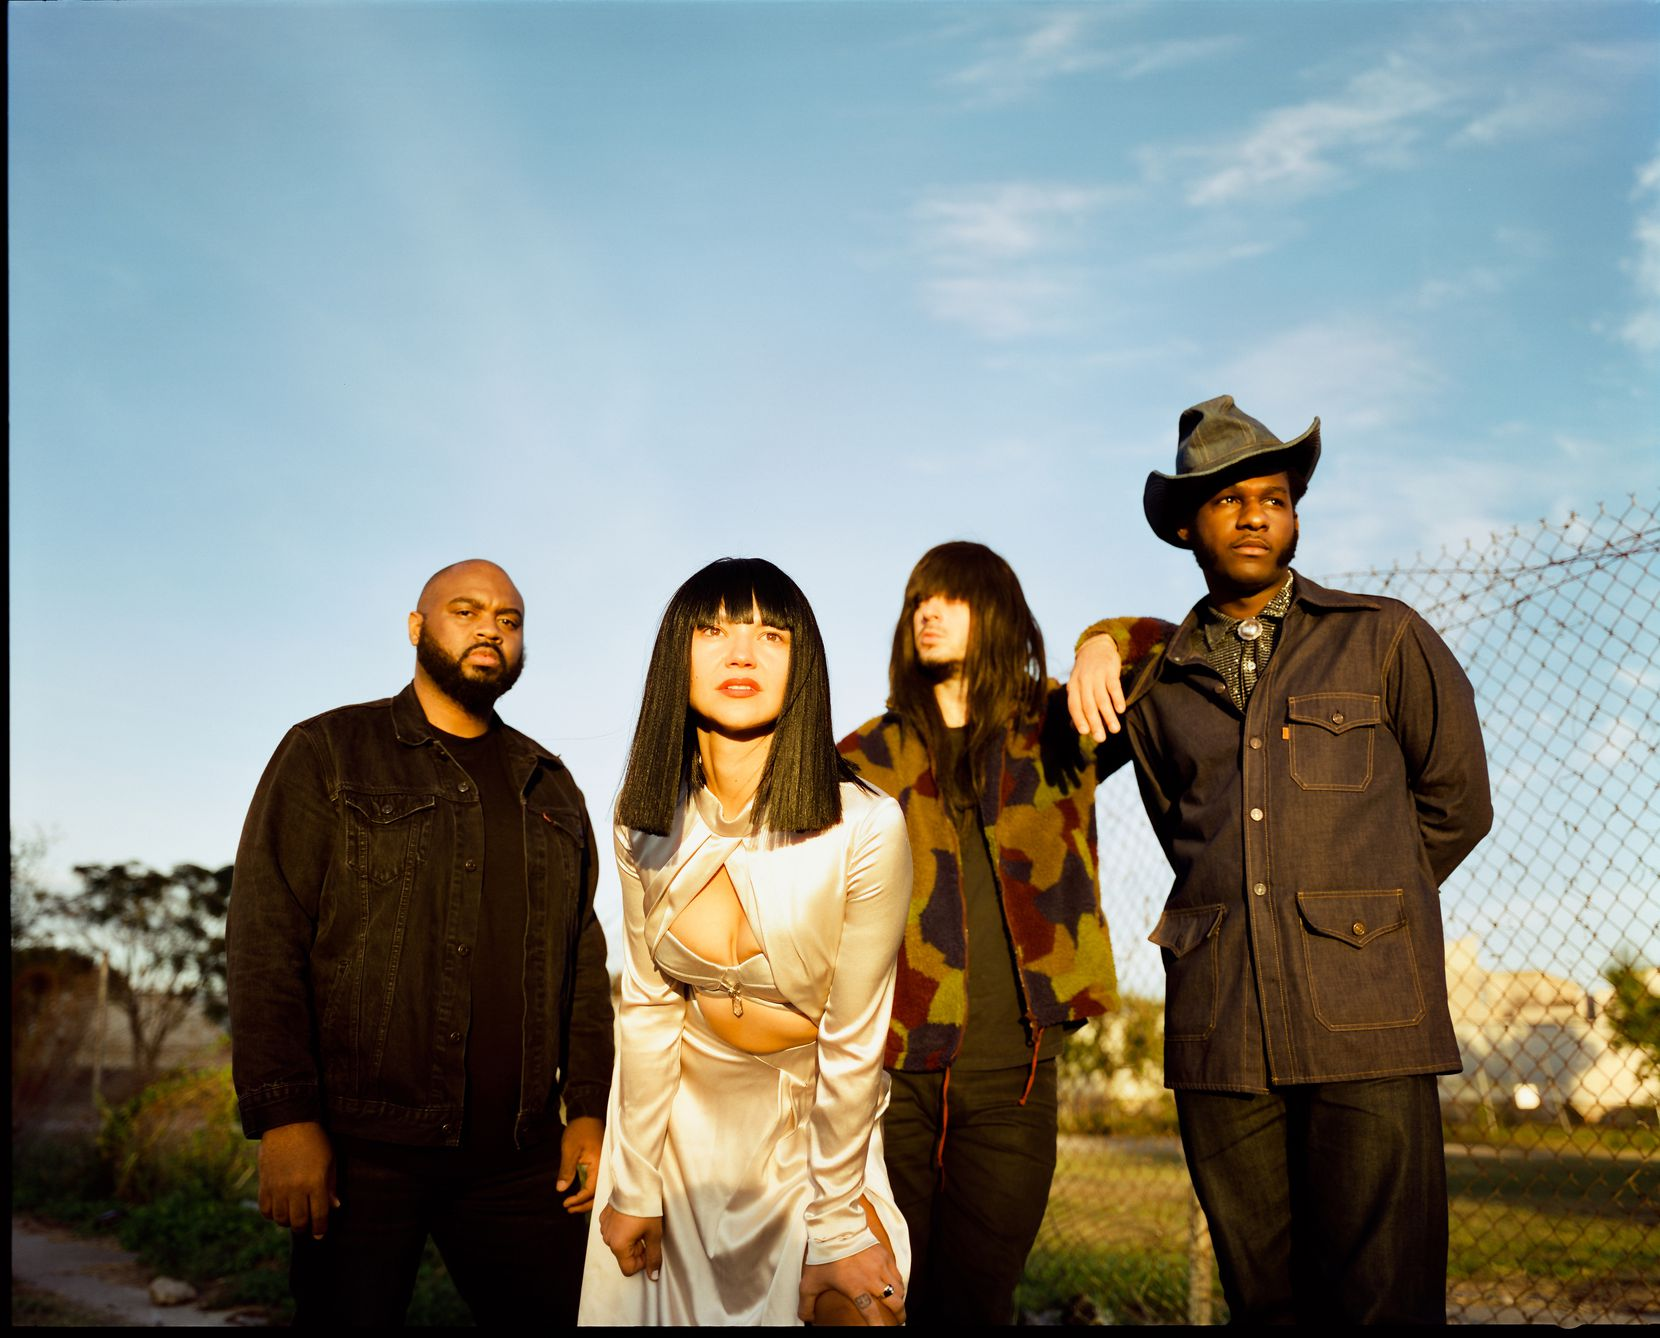 The Houston band Khruangbin poses for a publicity photo with Leon Bridges.